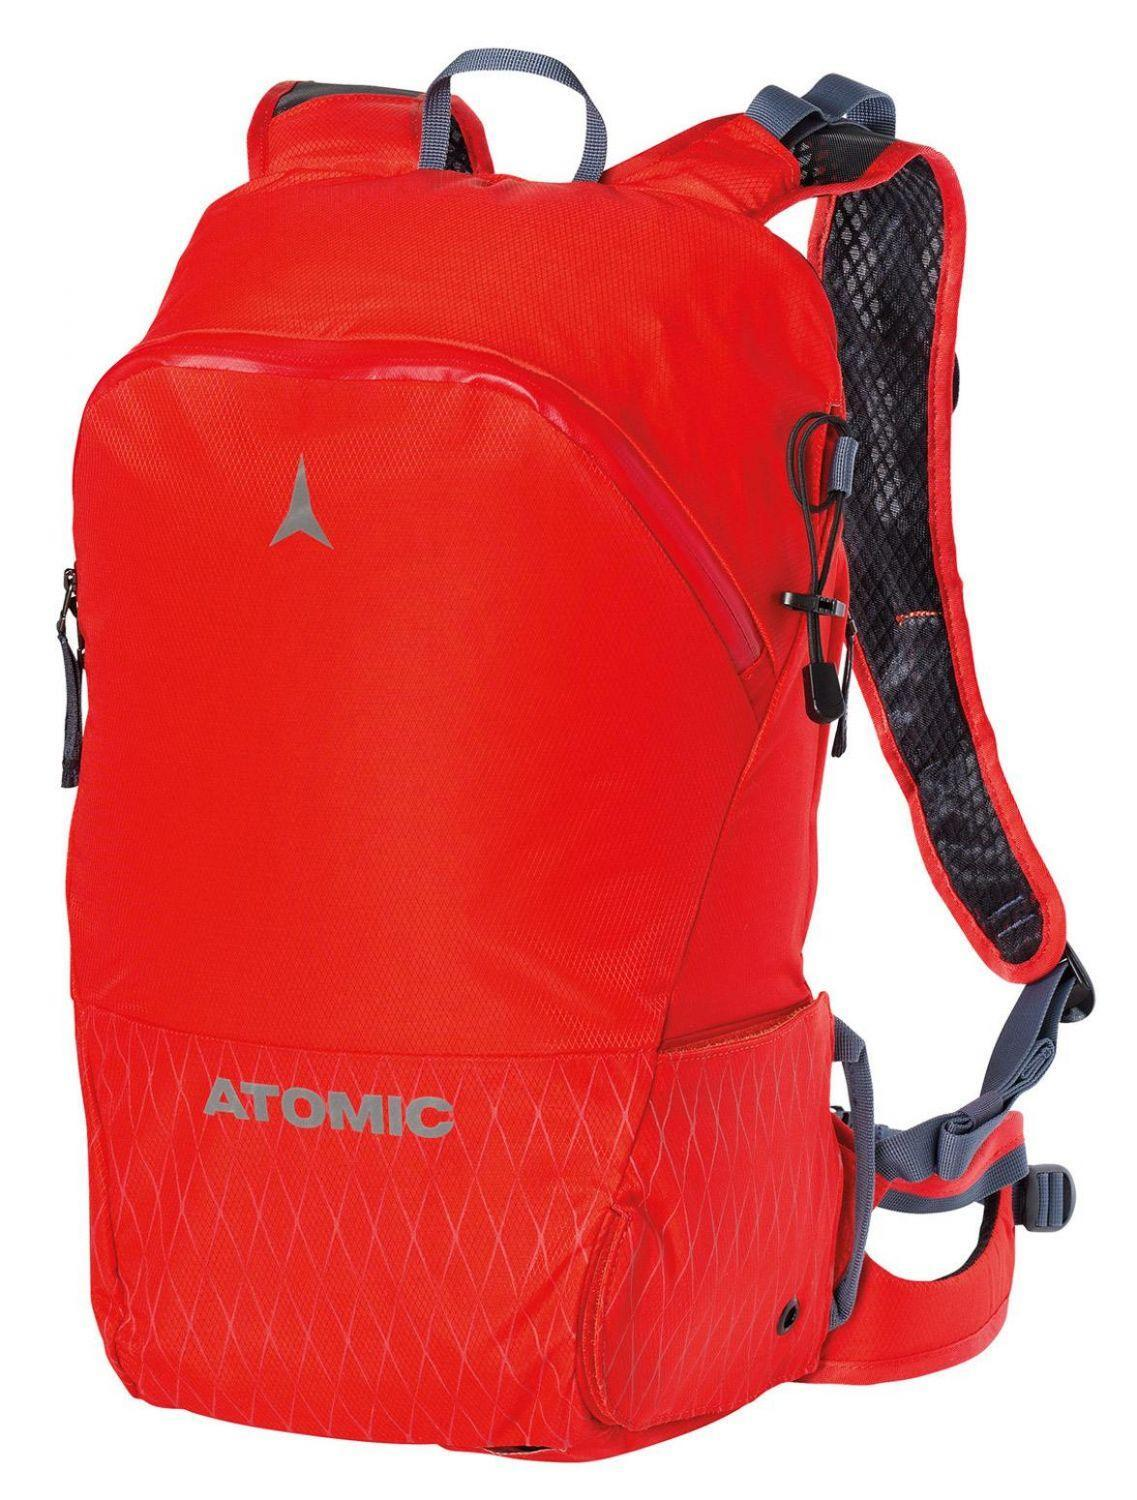 Atomic Backland UL Ski-Tourenrucksack